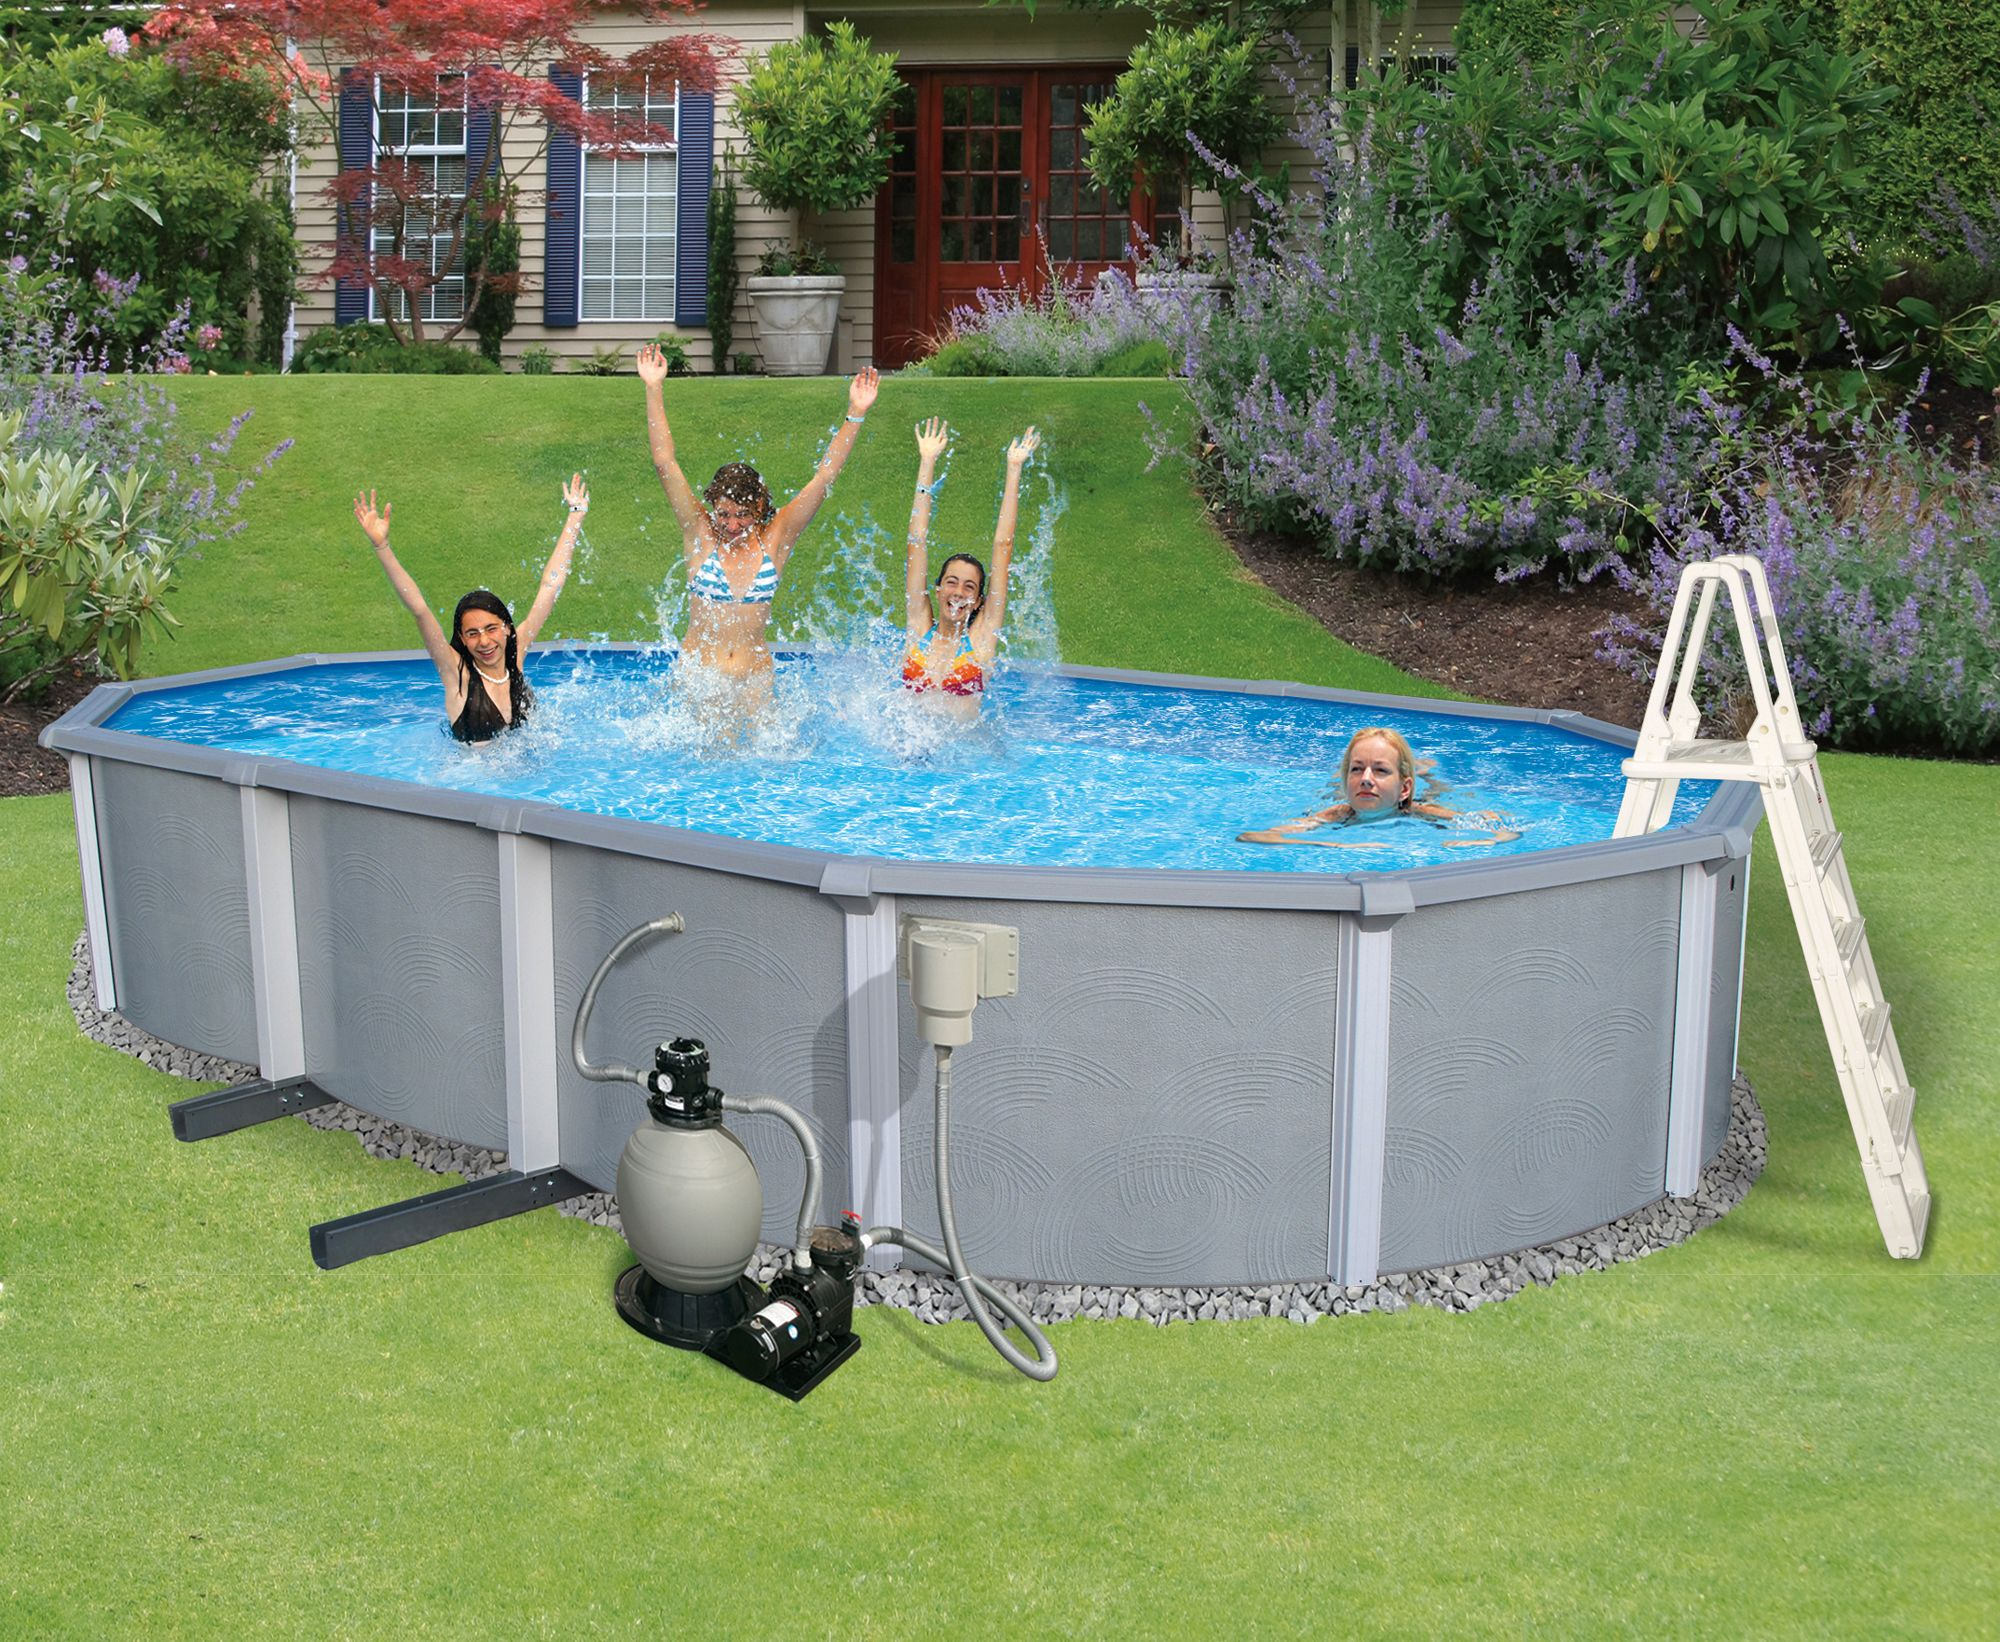 Free 2 Day Shipping Buy Blue Wave Zanzibar Oval 54 In Deep 8 In Top Rail Metal Wall Swimming Pool Package At Walma Oval Pool Above Ground Pool In Ground Pools